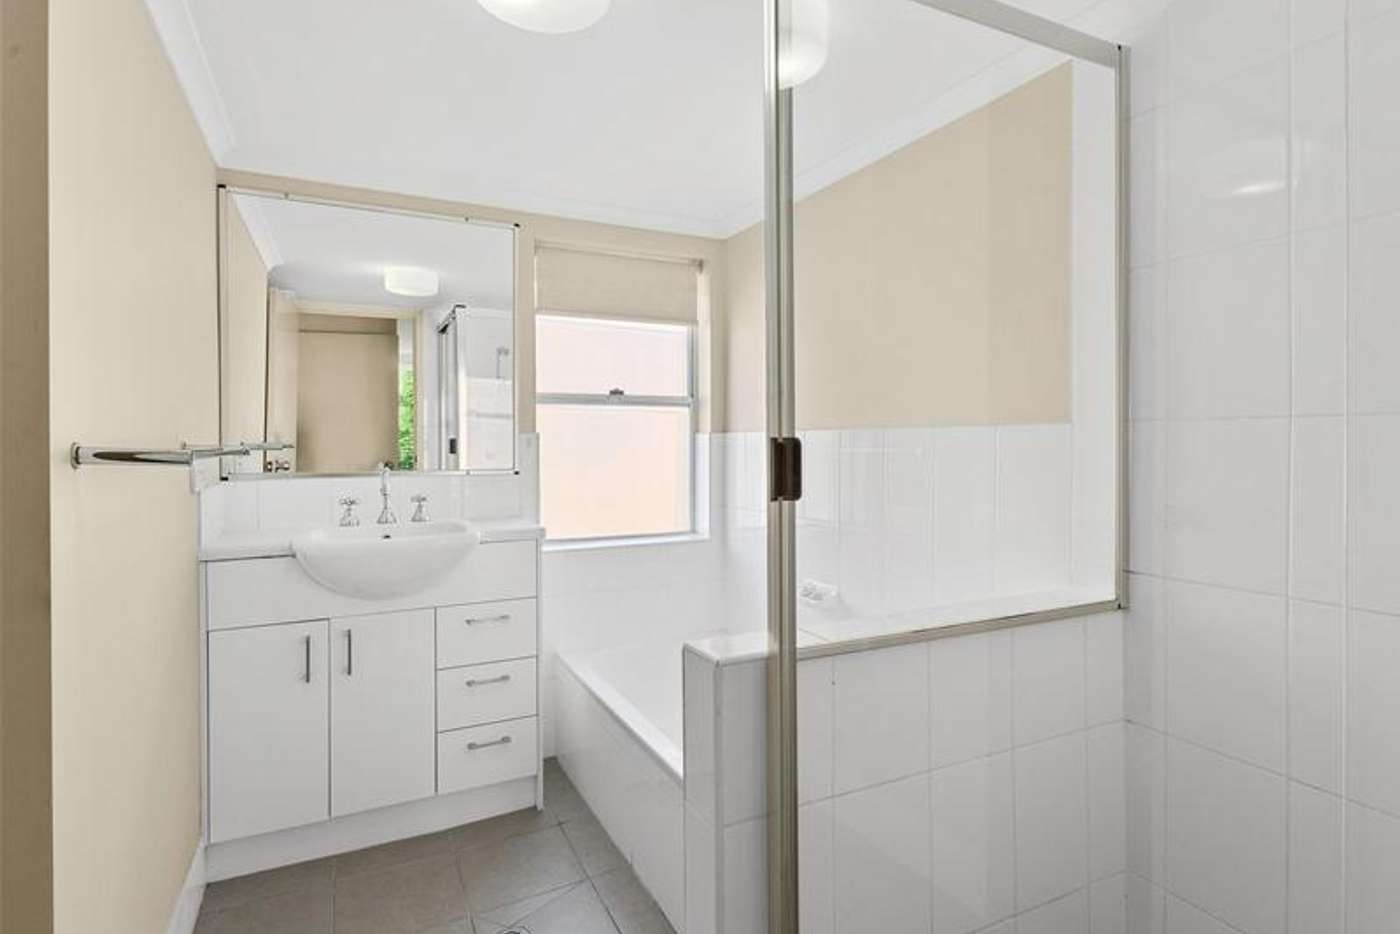 Sixth view of Homely apartment listing, 17/22 Warren Street, St Lucia QLD 4067